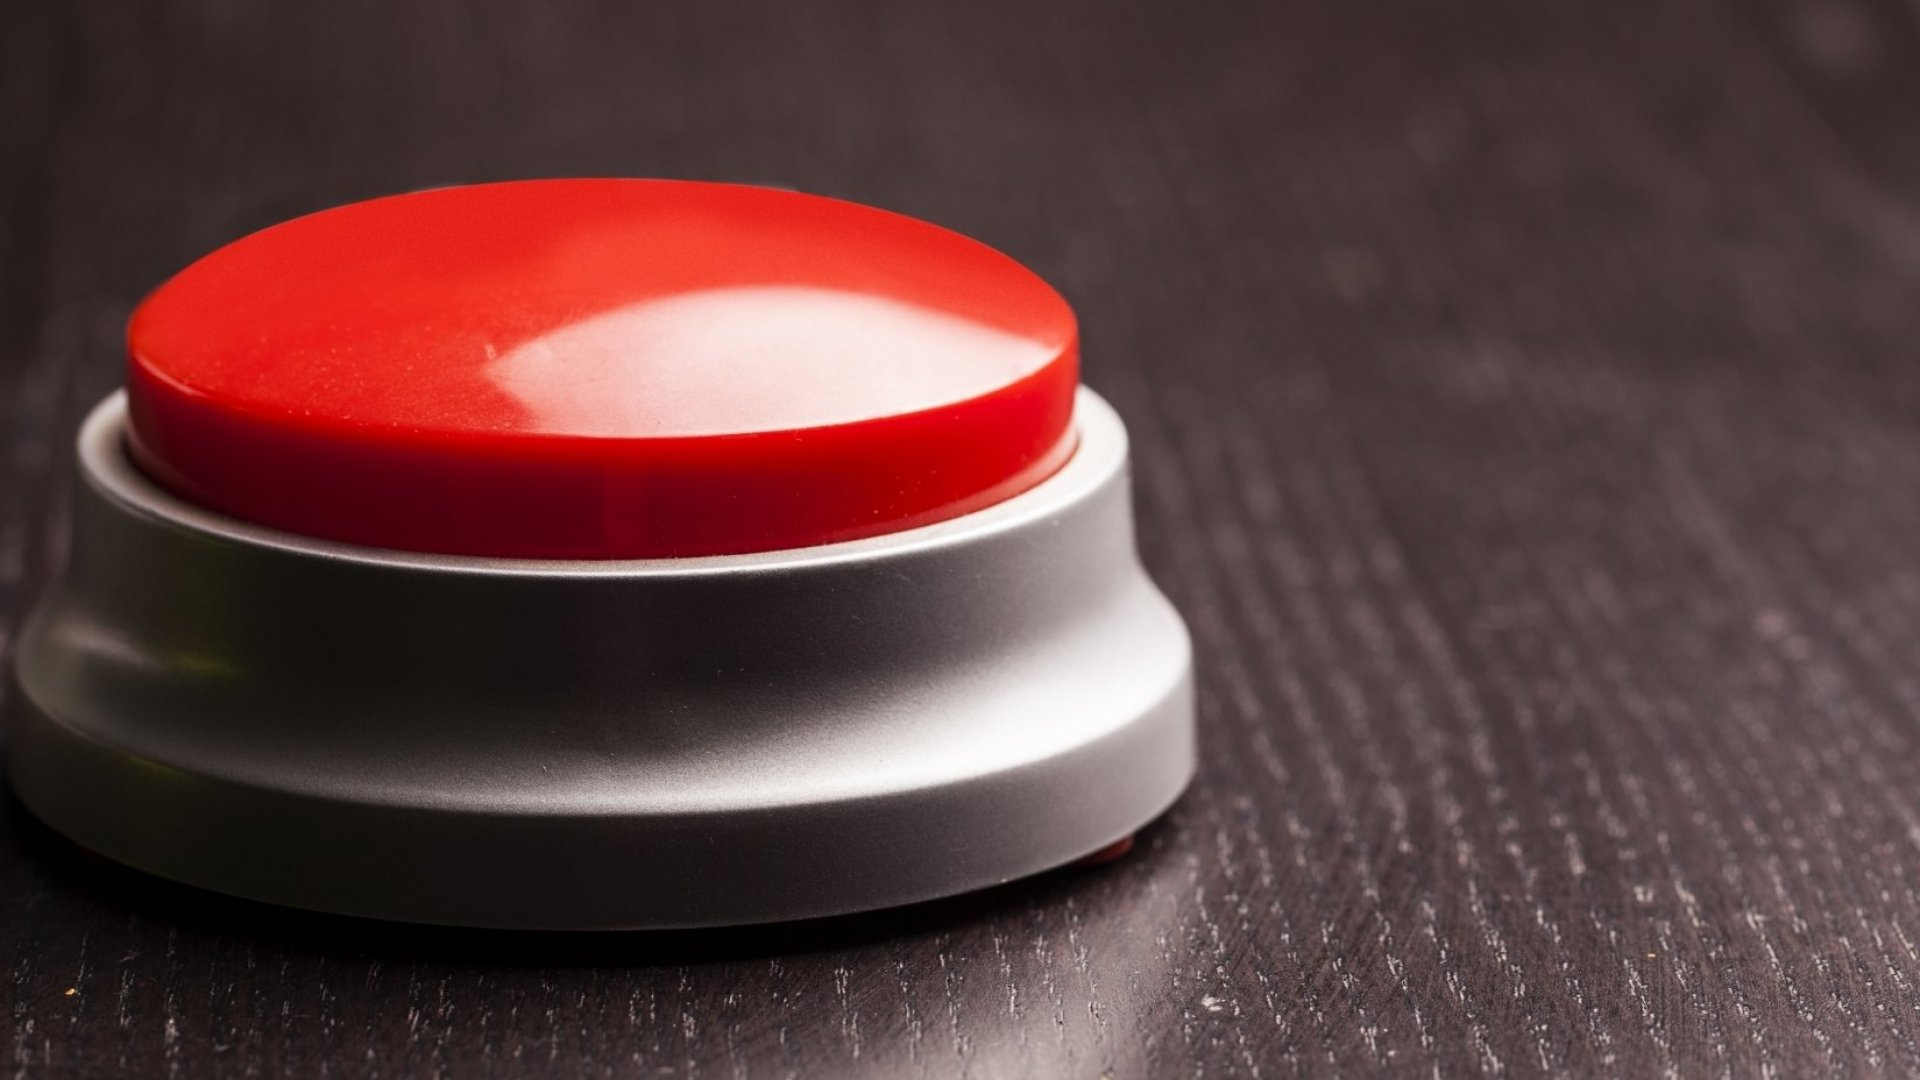 5 Things People With Emotional Intelligence Do When Their Buttons Are Pushed